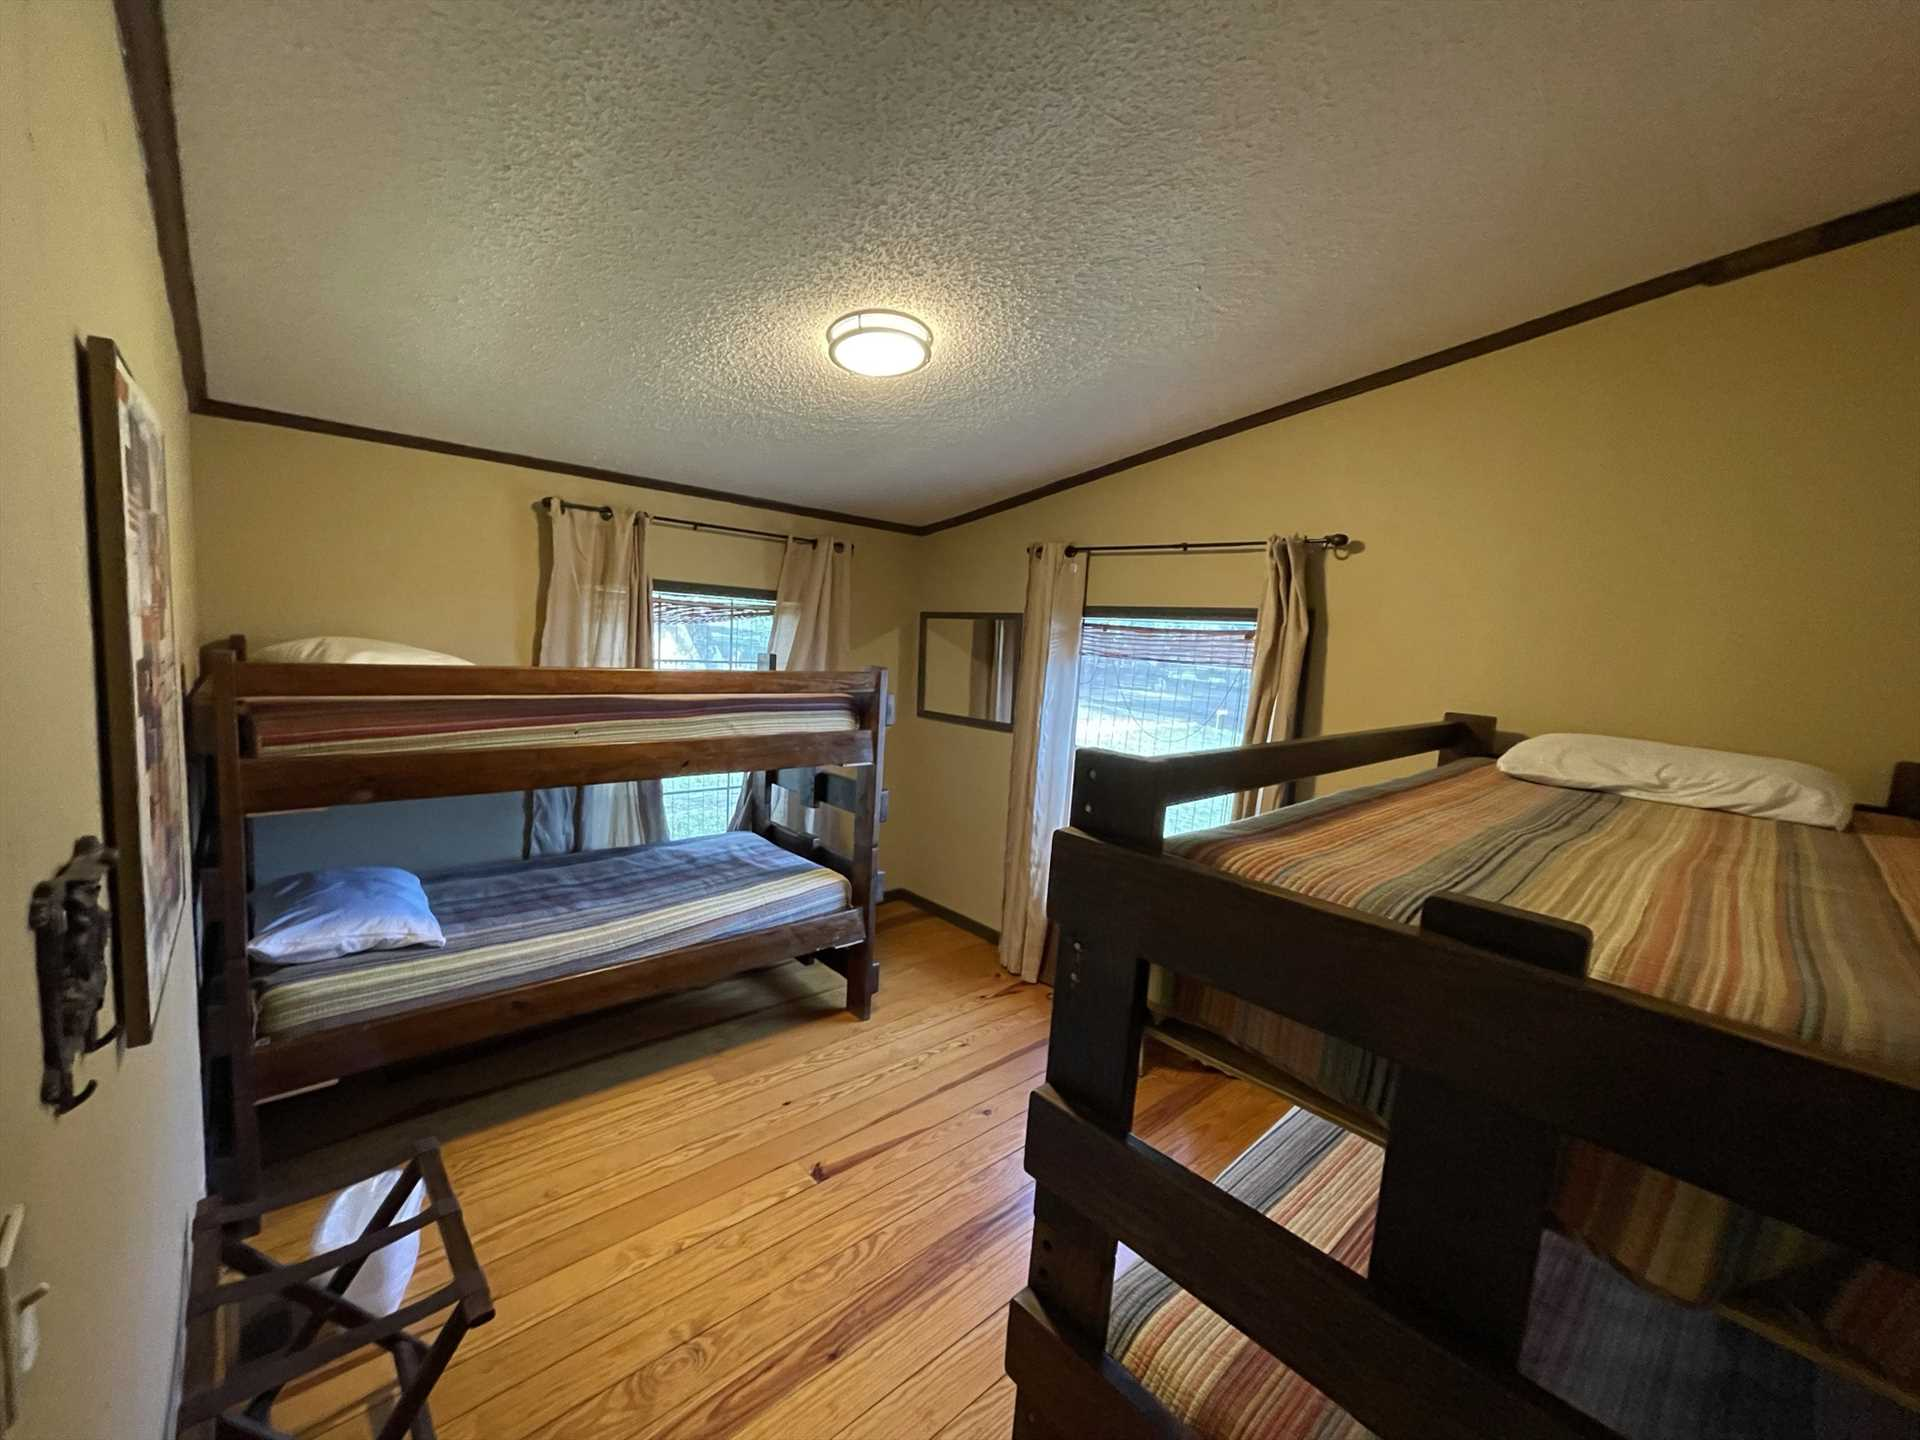 Two sets of twin bunk beds can be found in the second bedroom, offering comfortable sleeping accommodations for up to four.